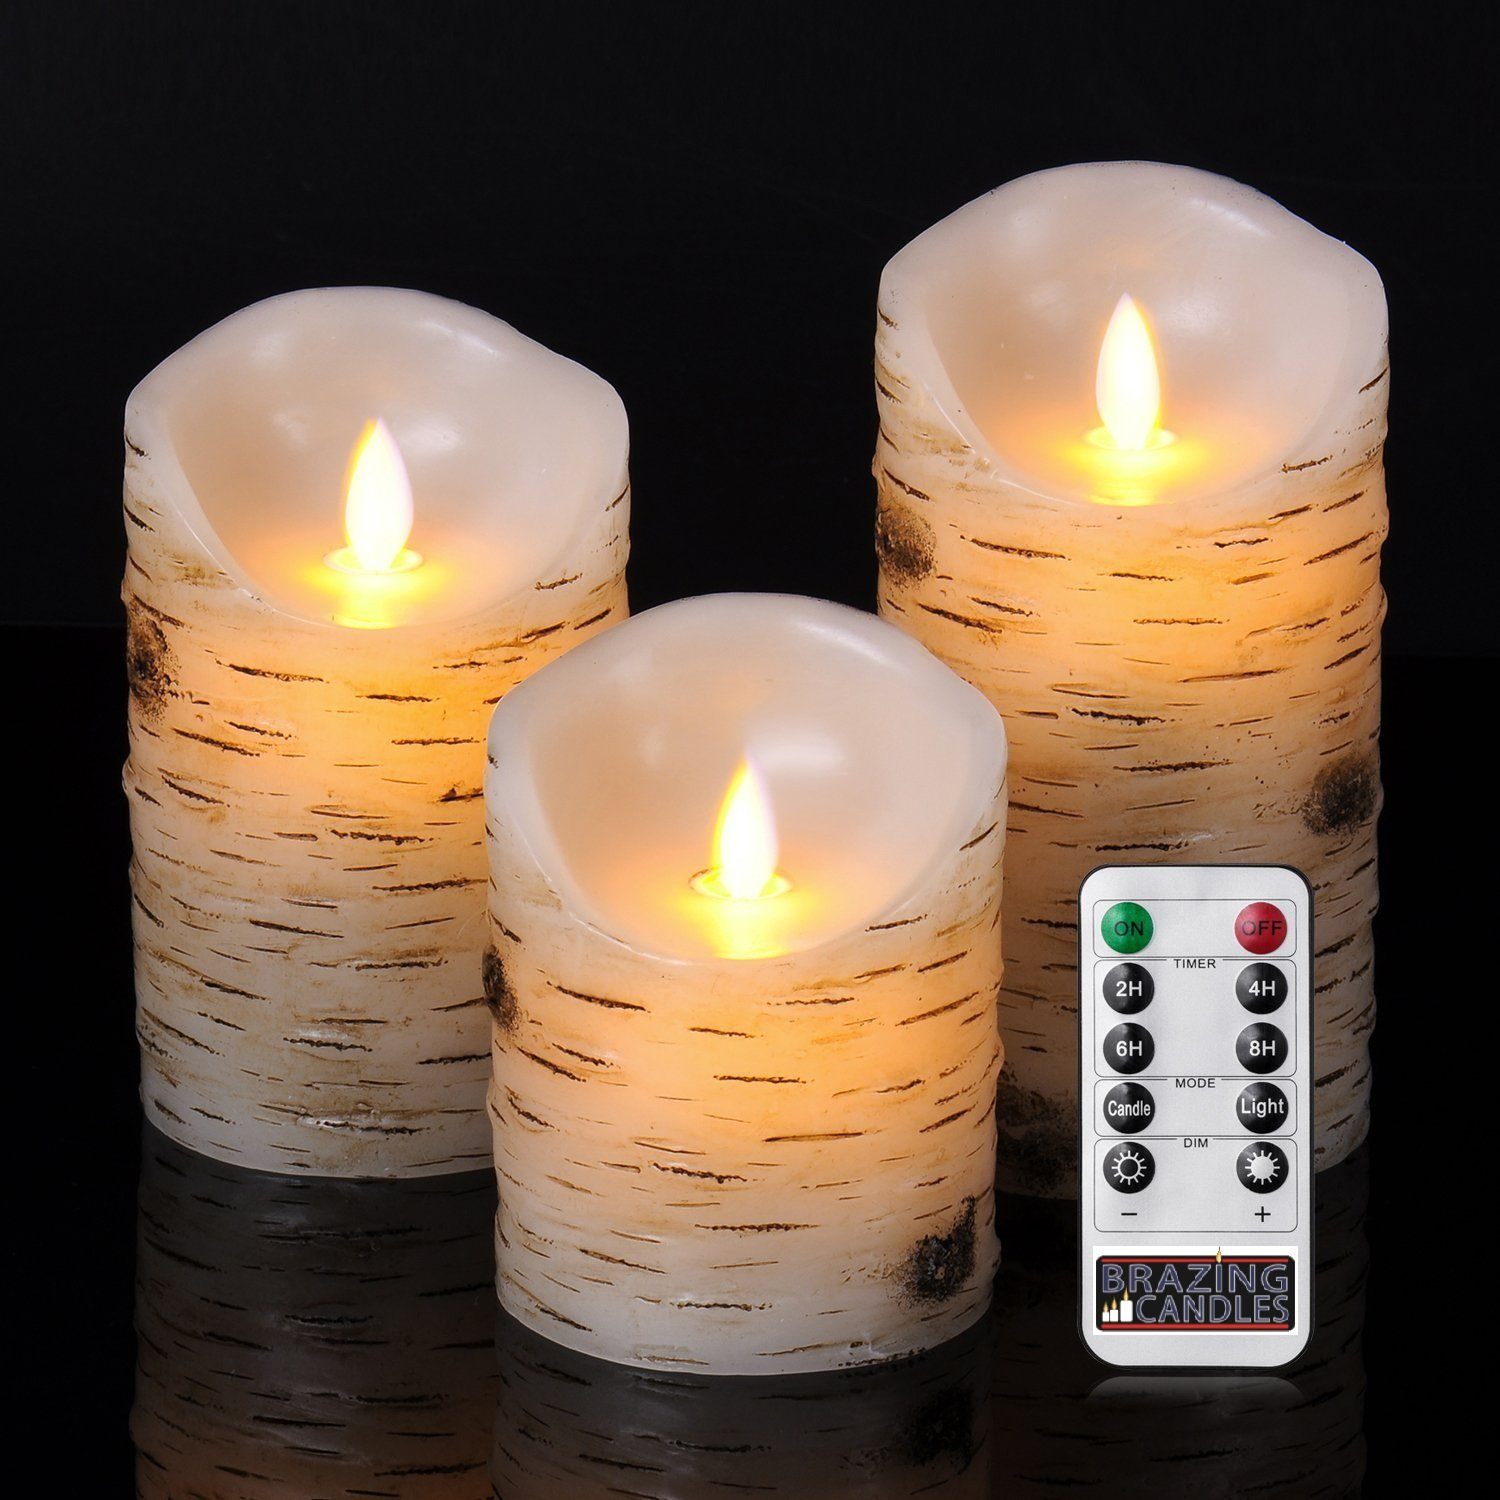 BRAZING CANDLES 3 pc LED Candle Set, Birch, 3 inch diam, remote control 3PC 3.15''x4''/5''/6High,Moving flame, Birch bark effect Birch wood,w/10 key remote control